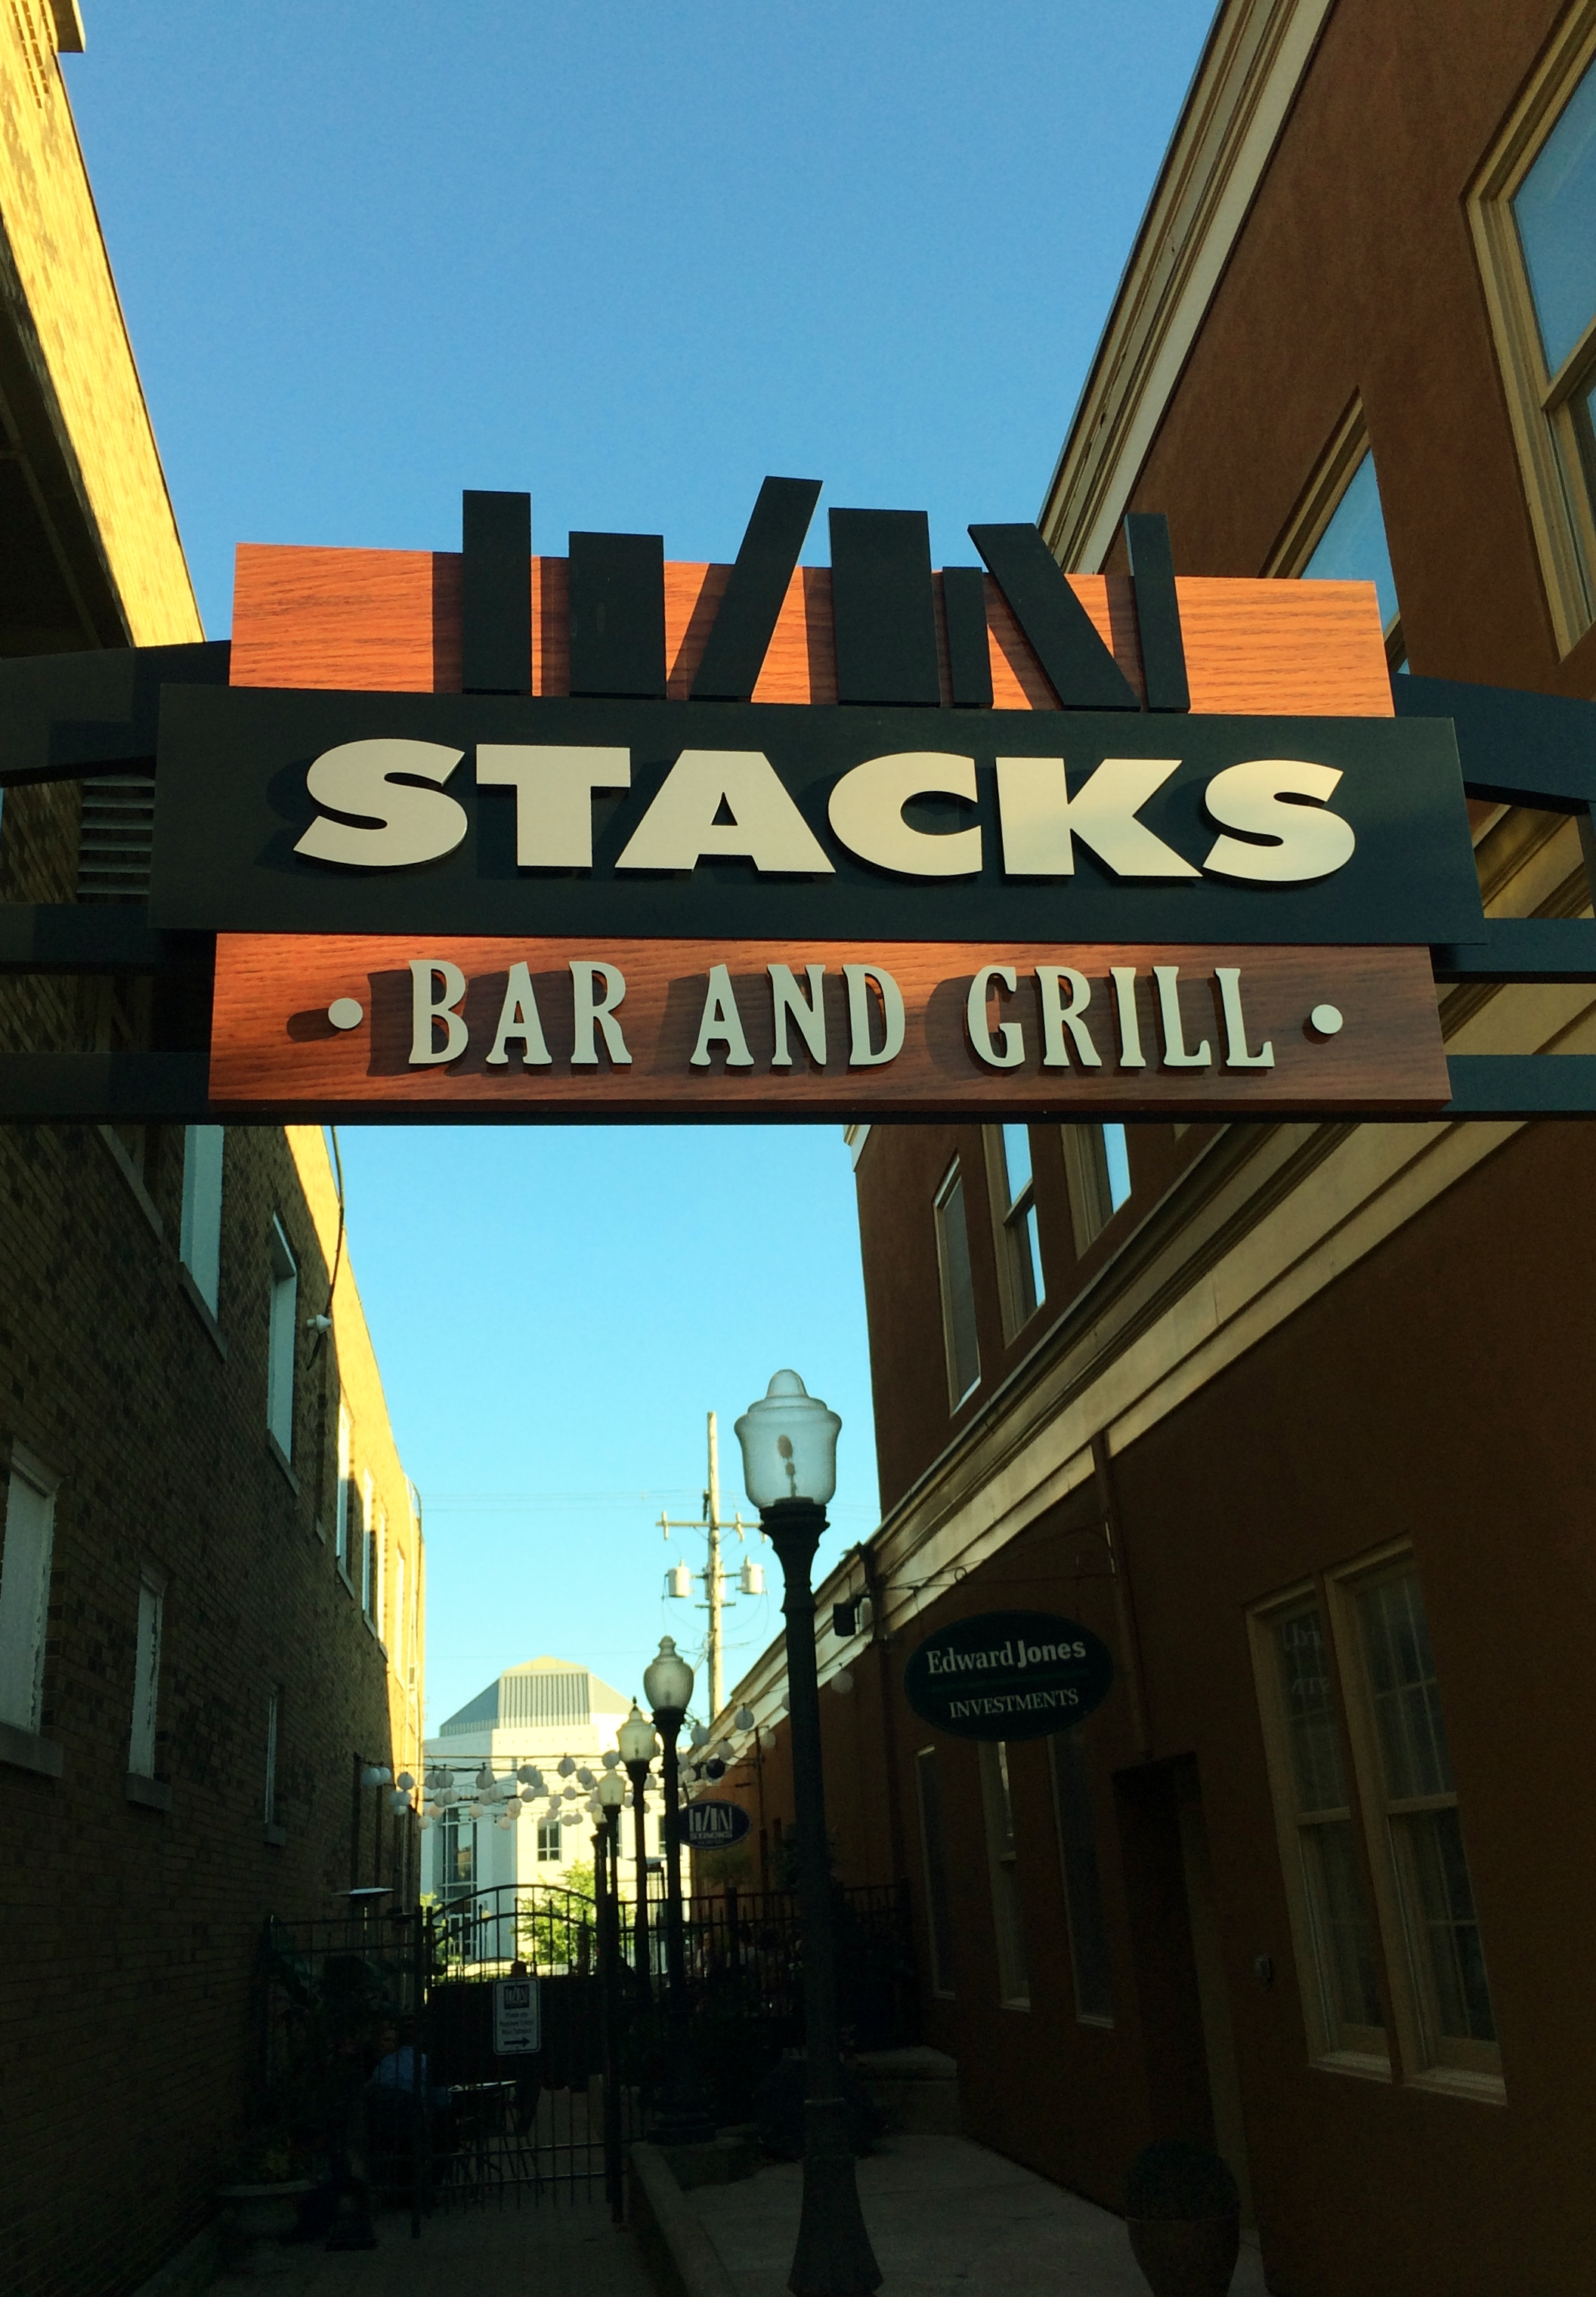 Stacks bar and grill in valparaiso indiana little indiana - Restaurant bar and grill ...